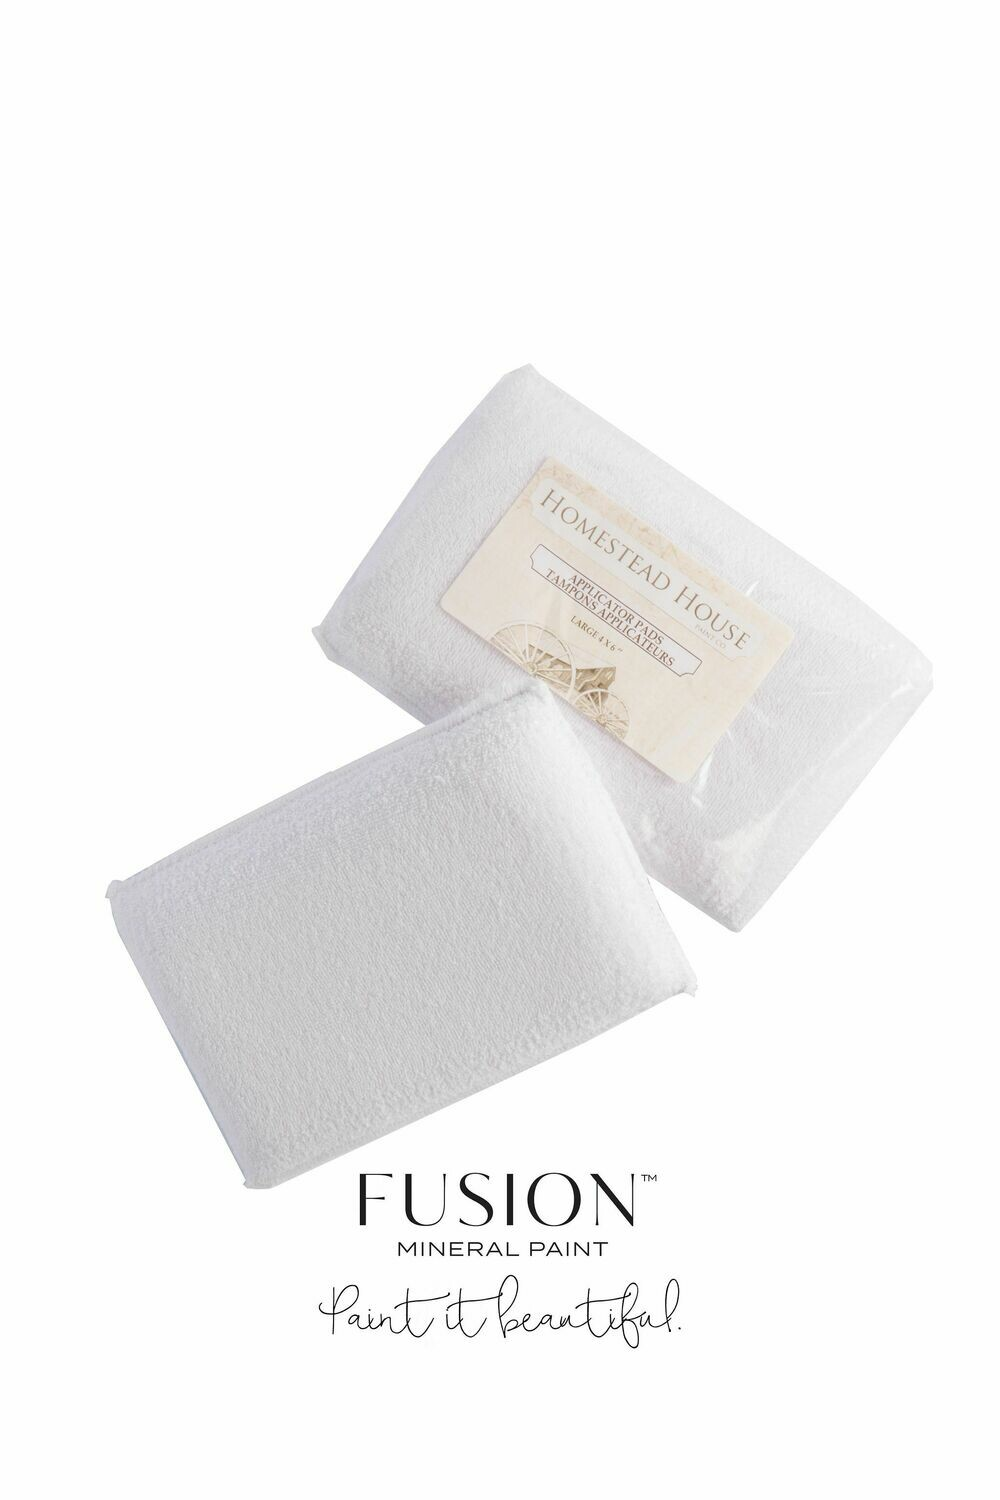 Applicator Pads 2‐pack